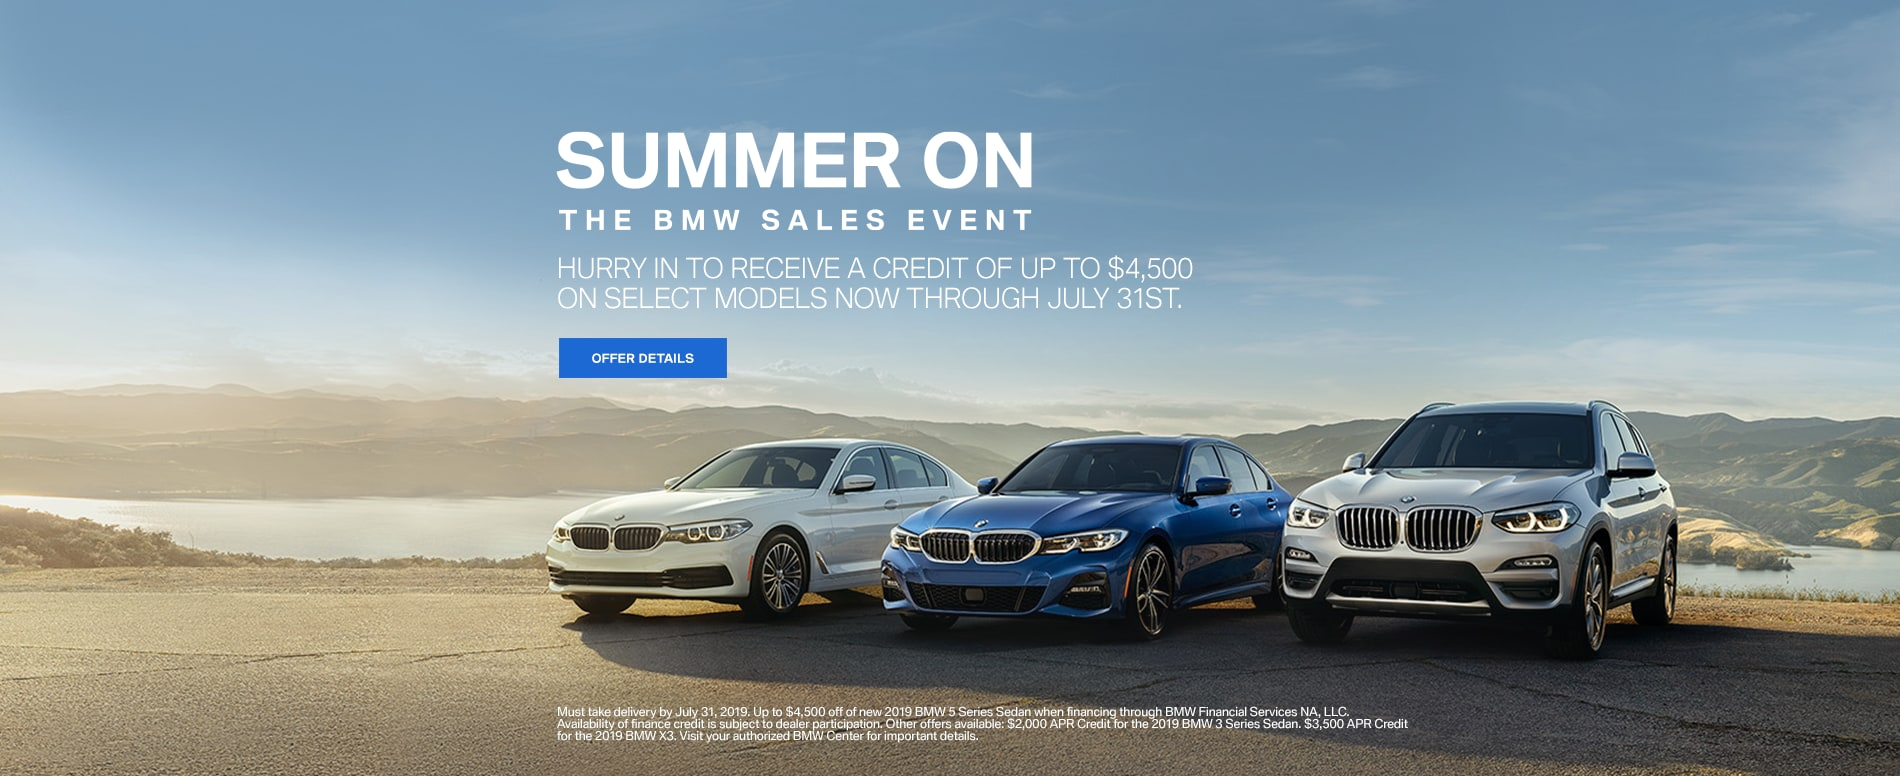 Bmw Mountain View Service >> Stevens Creek Bmw Bmw Auto Dealership In Santa Clara Ca